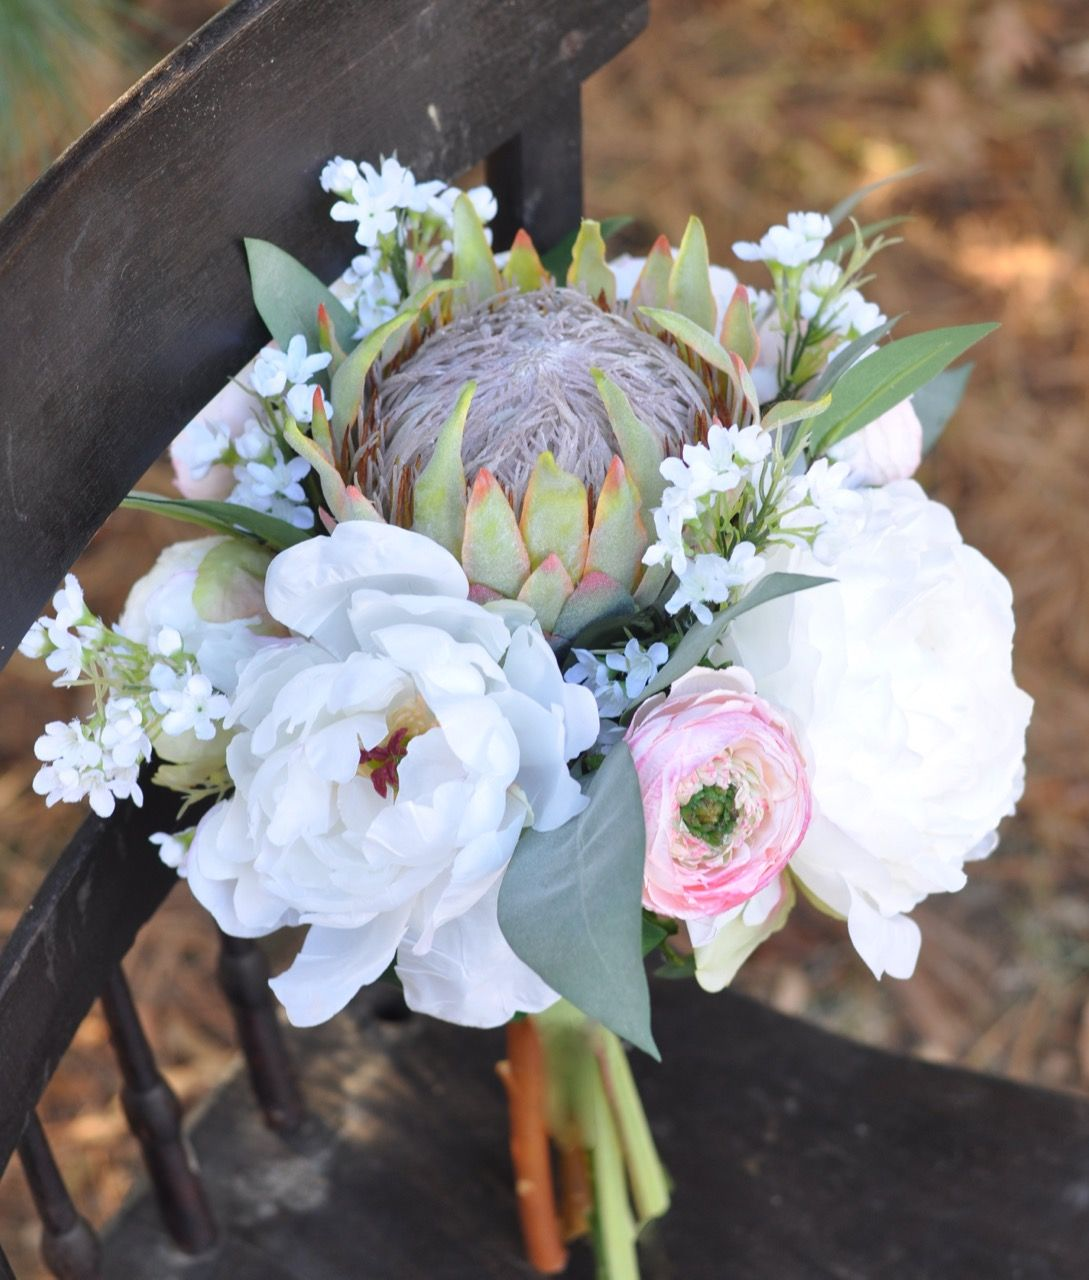 King Protea Ranunculus And Peony Artificial Flower Bouquet By Holly S Wedding Flowers Flower Bouquet Wedding Wedding Flowers Artificial Flower Bouquet